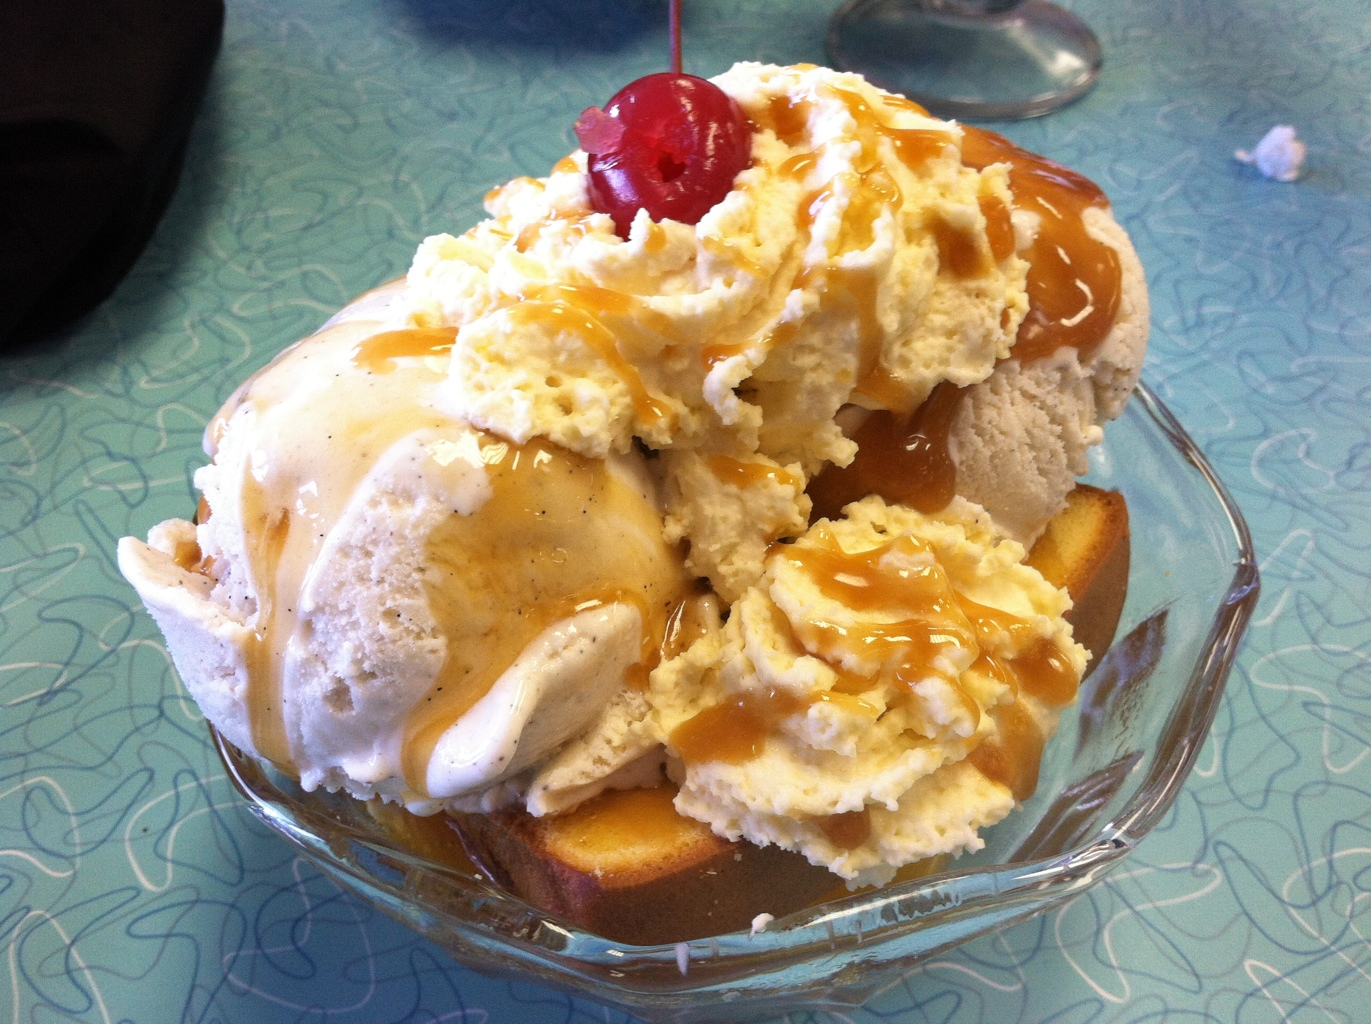 Toasted Poundcake Sundae at Lofty Pursuits